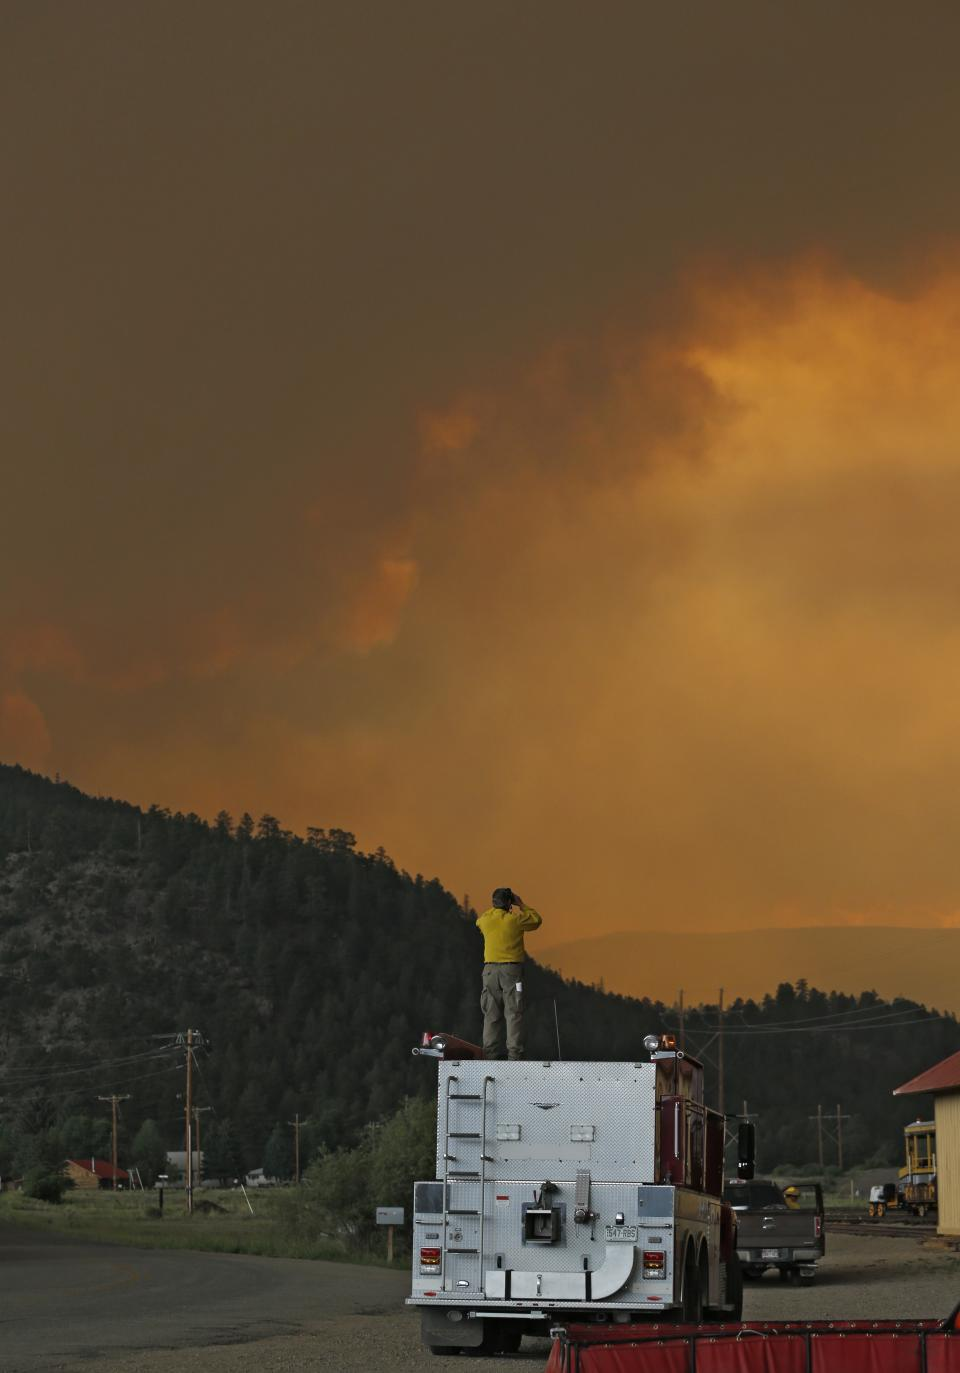 A firefighter stands on top of a fire truck in South Fork, Colo., as he monitors a wildfire that burns west of town on Friday evening June 21, 2013. The town was evacuated and U.S. 160 that passes through it was closed. (AP Photo/Ed Andrieski)